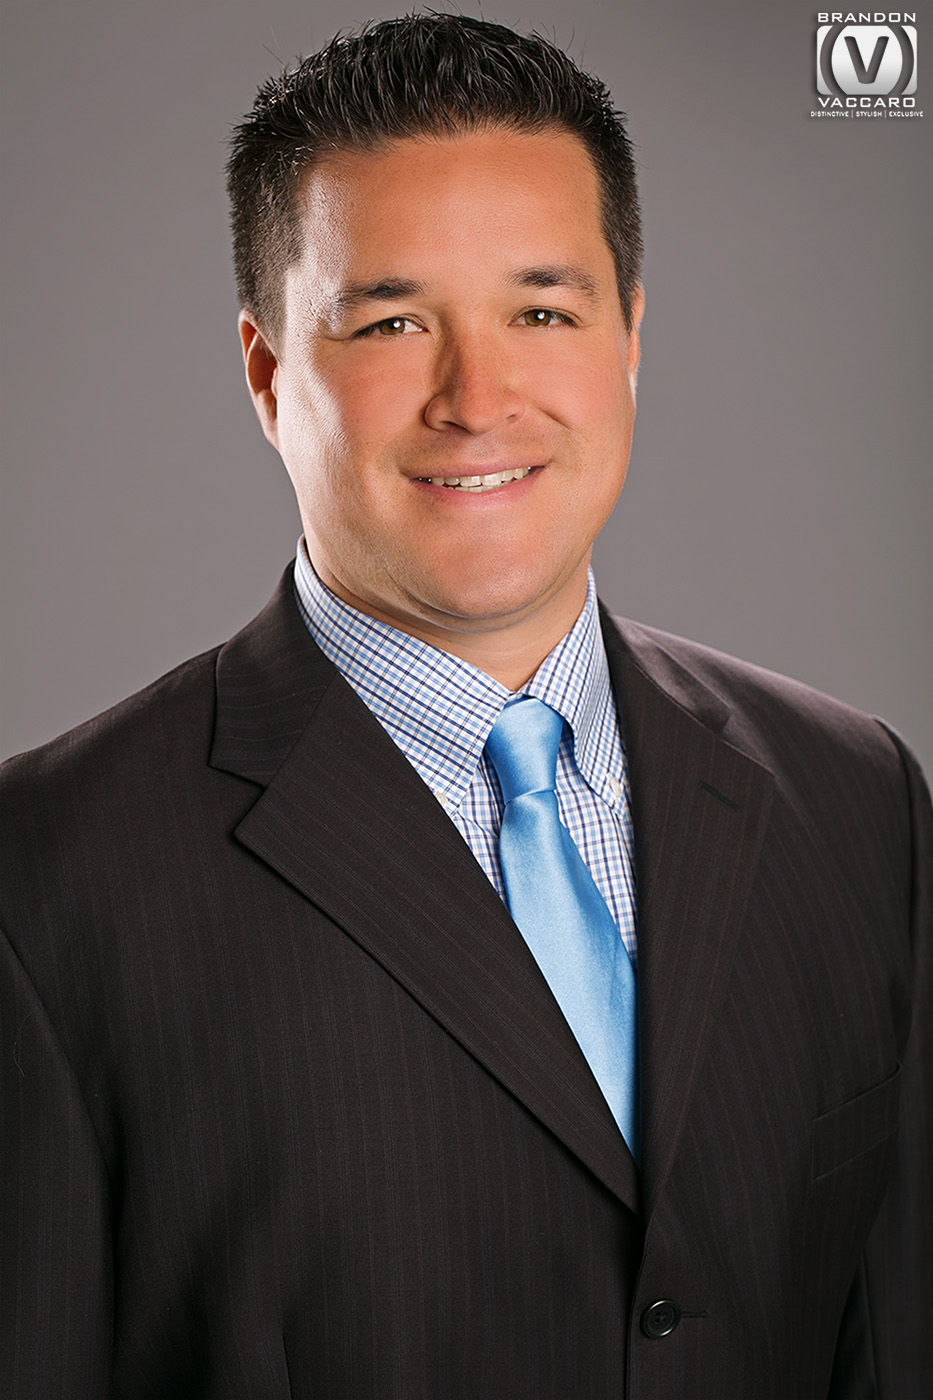 headshot-executive-mortgage-broker.jpg